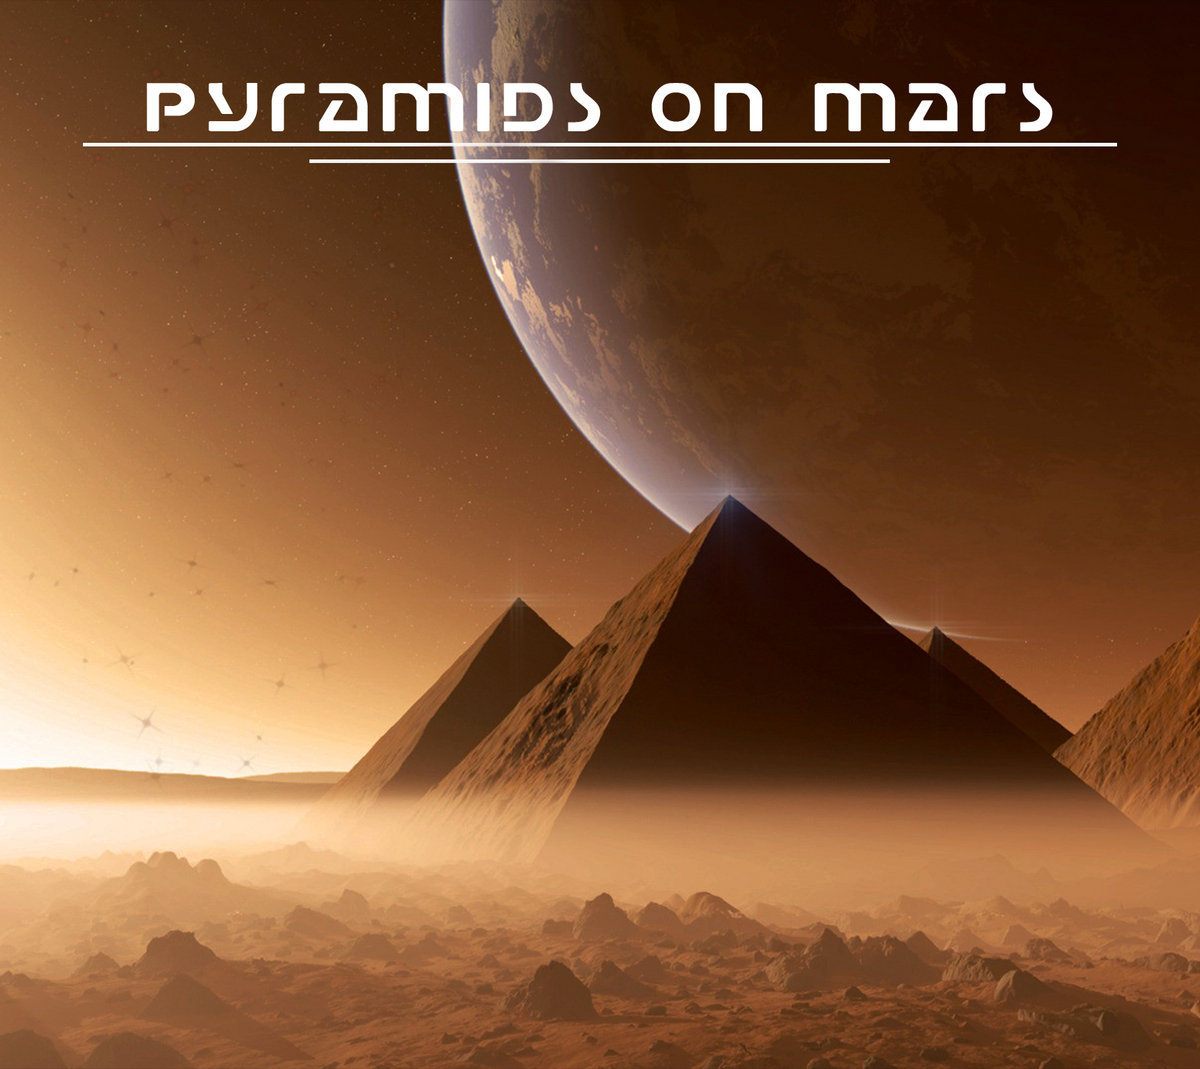 pyramids on different planets - photo #2